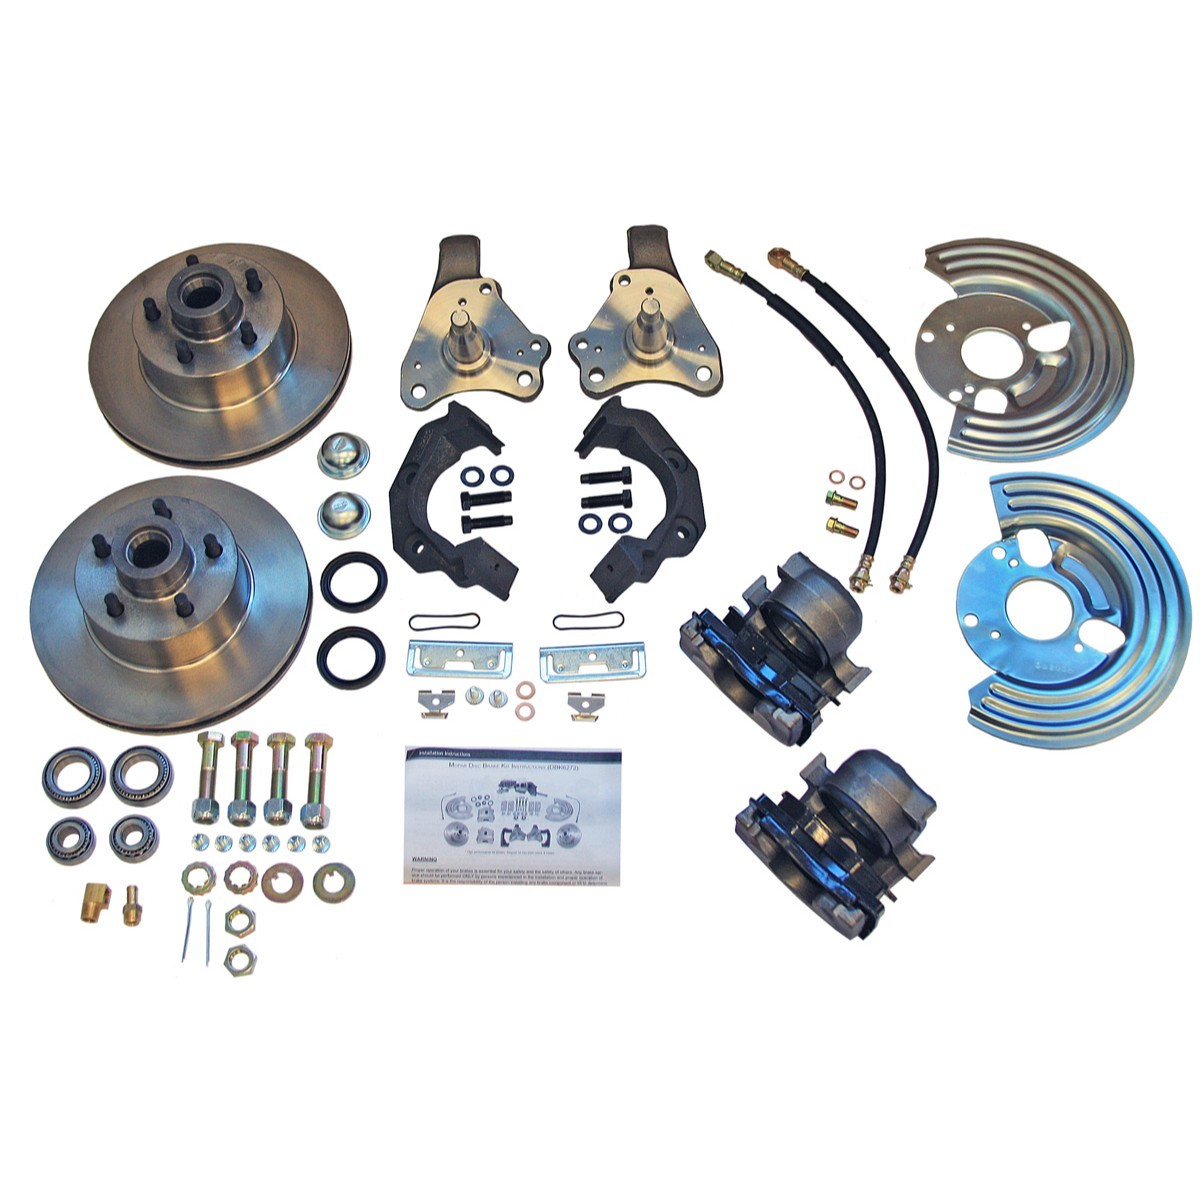 1966-70 Mopar B-body, 71-74 Mopar B-body, 70-74 Mopar E-body Disc Brake  Lower Conversion Kit